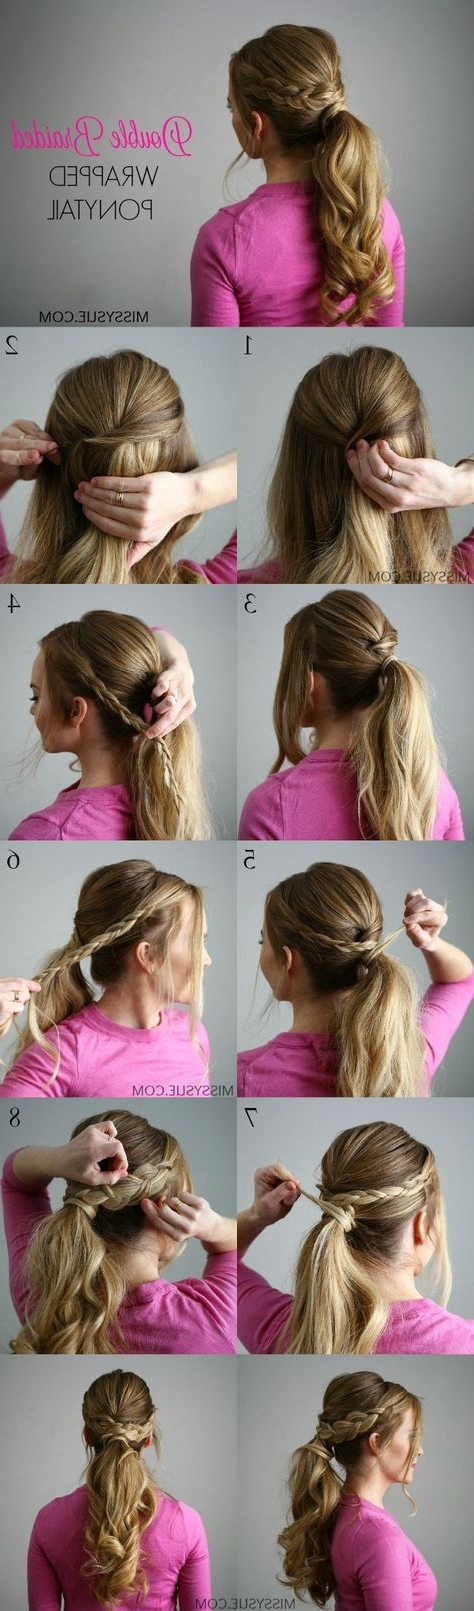 Double Braid Wrapped Ponytail | Hairstyle Ideas | Pinterest | Ponytail Within Double Braided Wrap Around Ponytail Hairstyles (View 12 of 25)